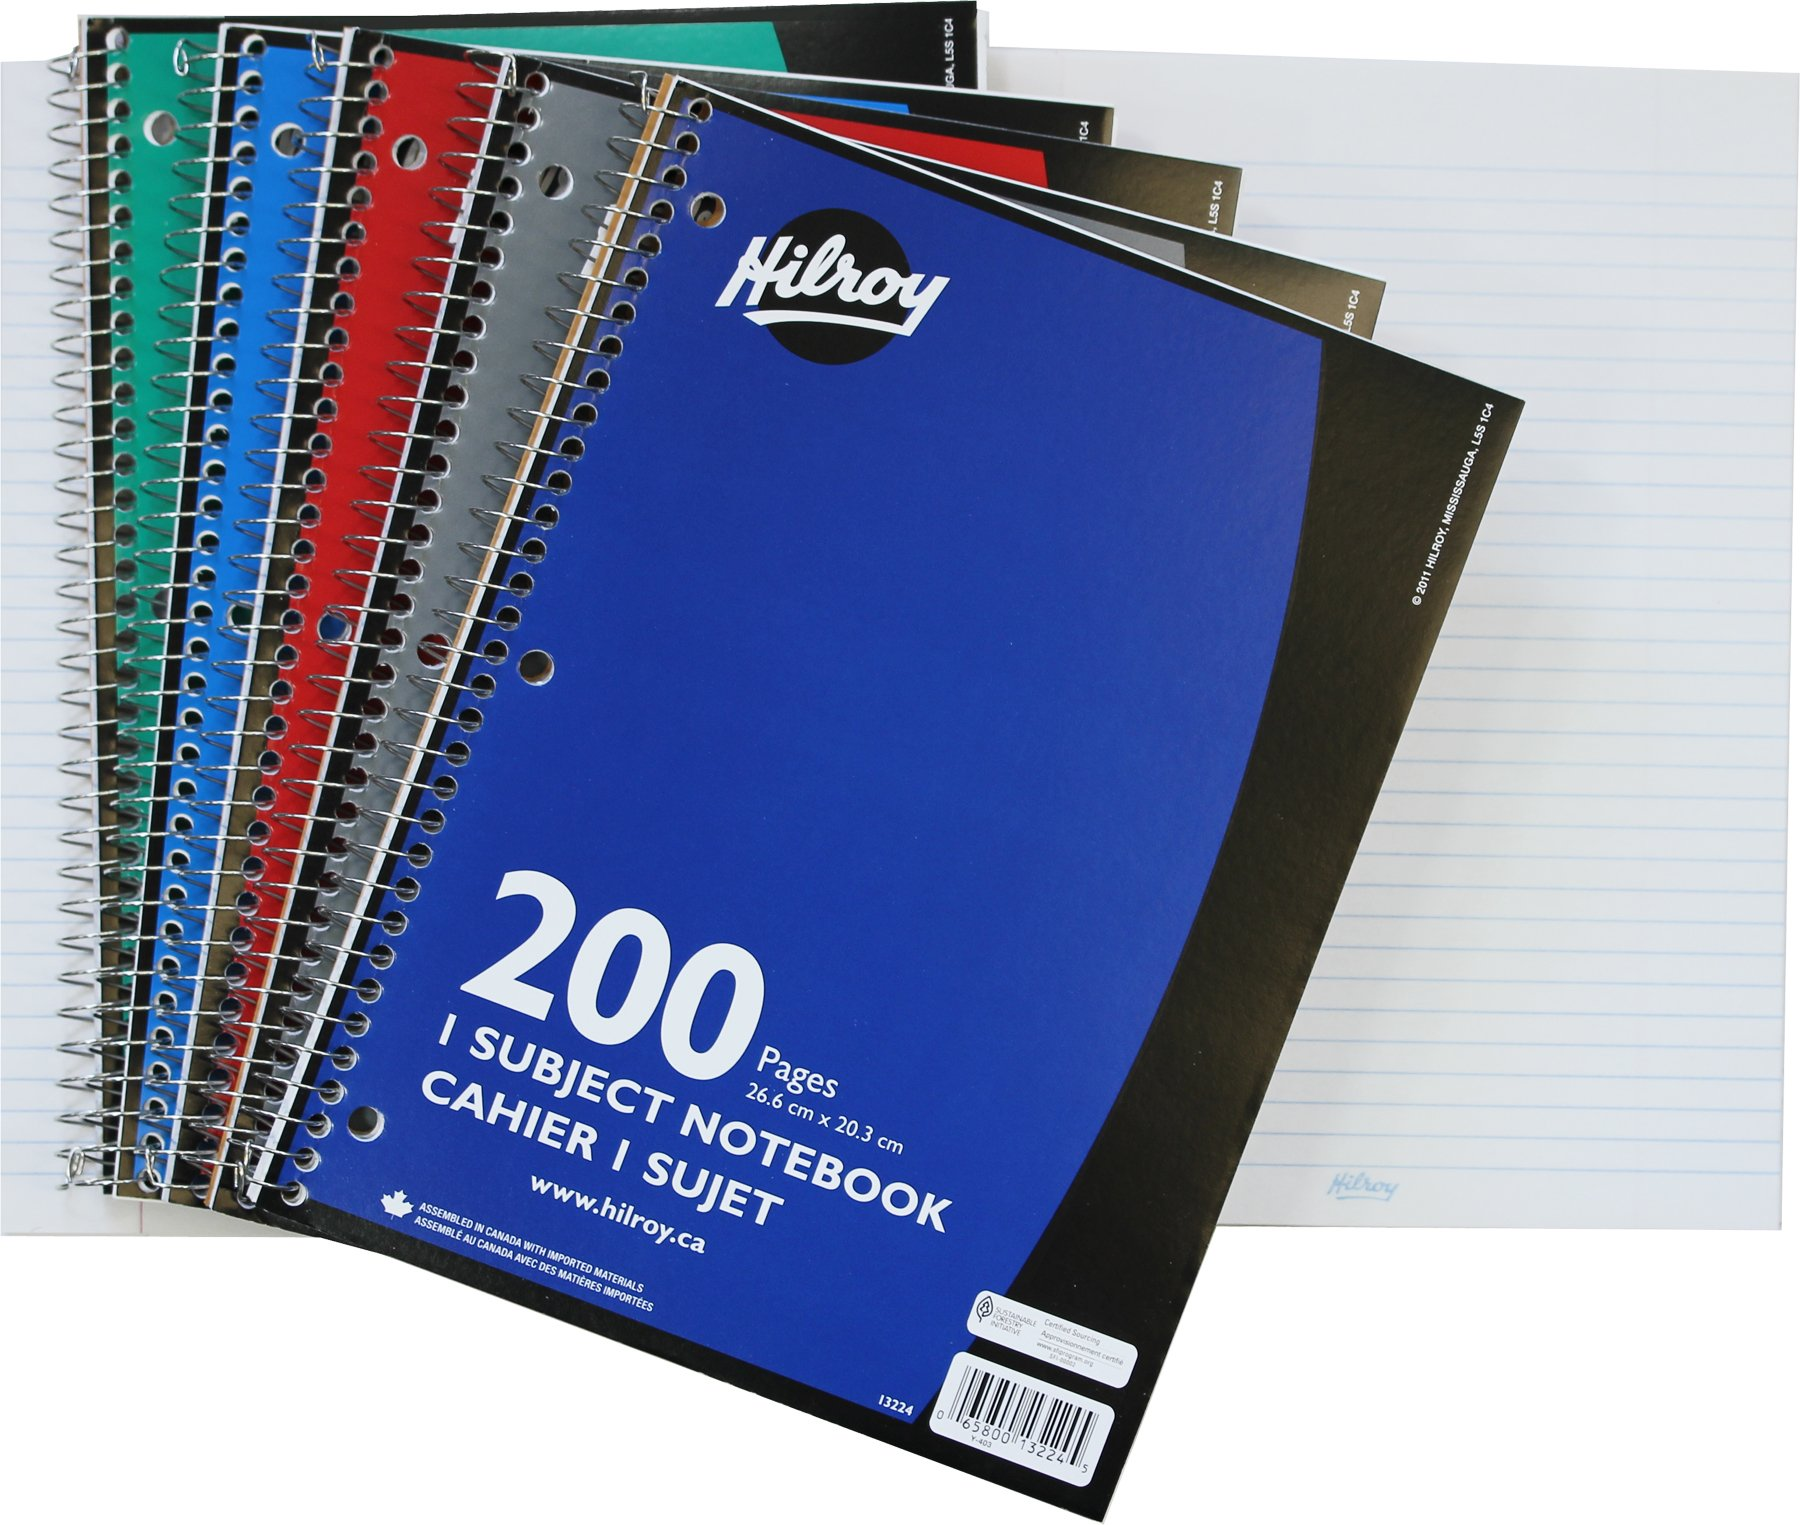 Hilroy Coil 1-subject Wide Ruled Notebook, 10.5 X 8 Inches, 3 Hole Punched, 100 Sheets (200 Pages), 1 Notebook, Color May Vary (13224) product image